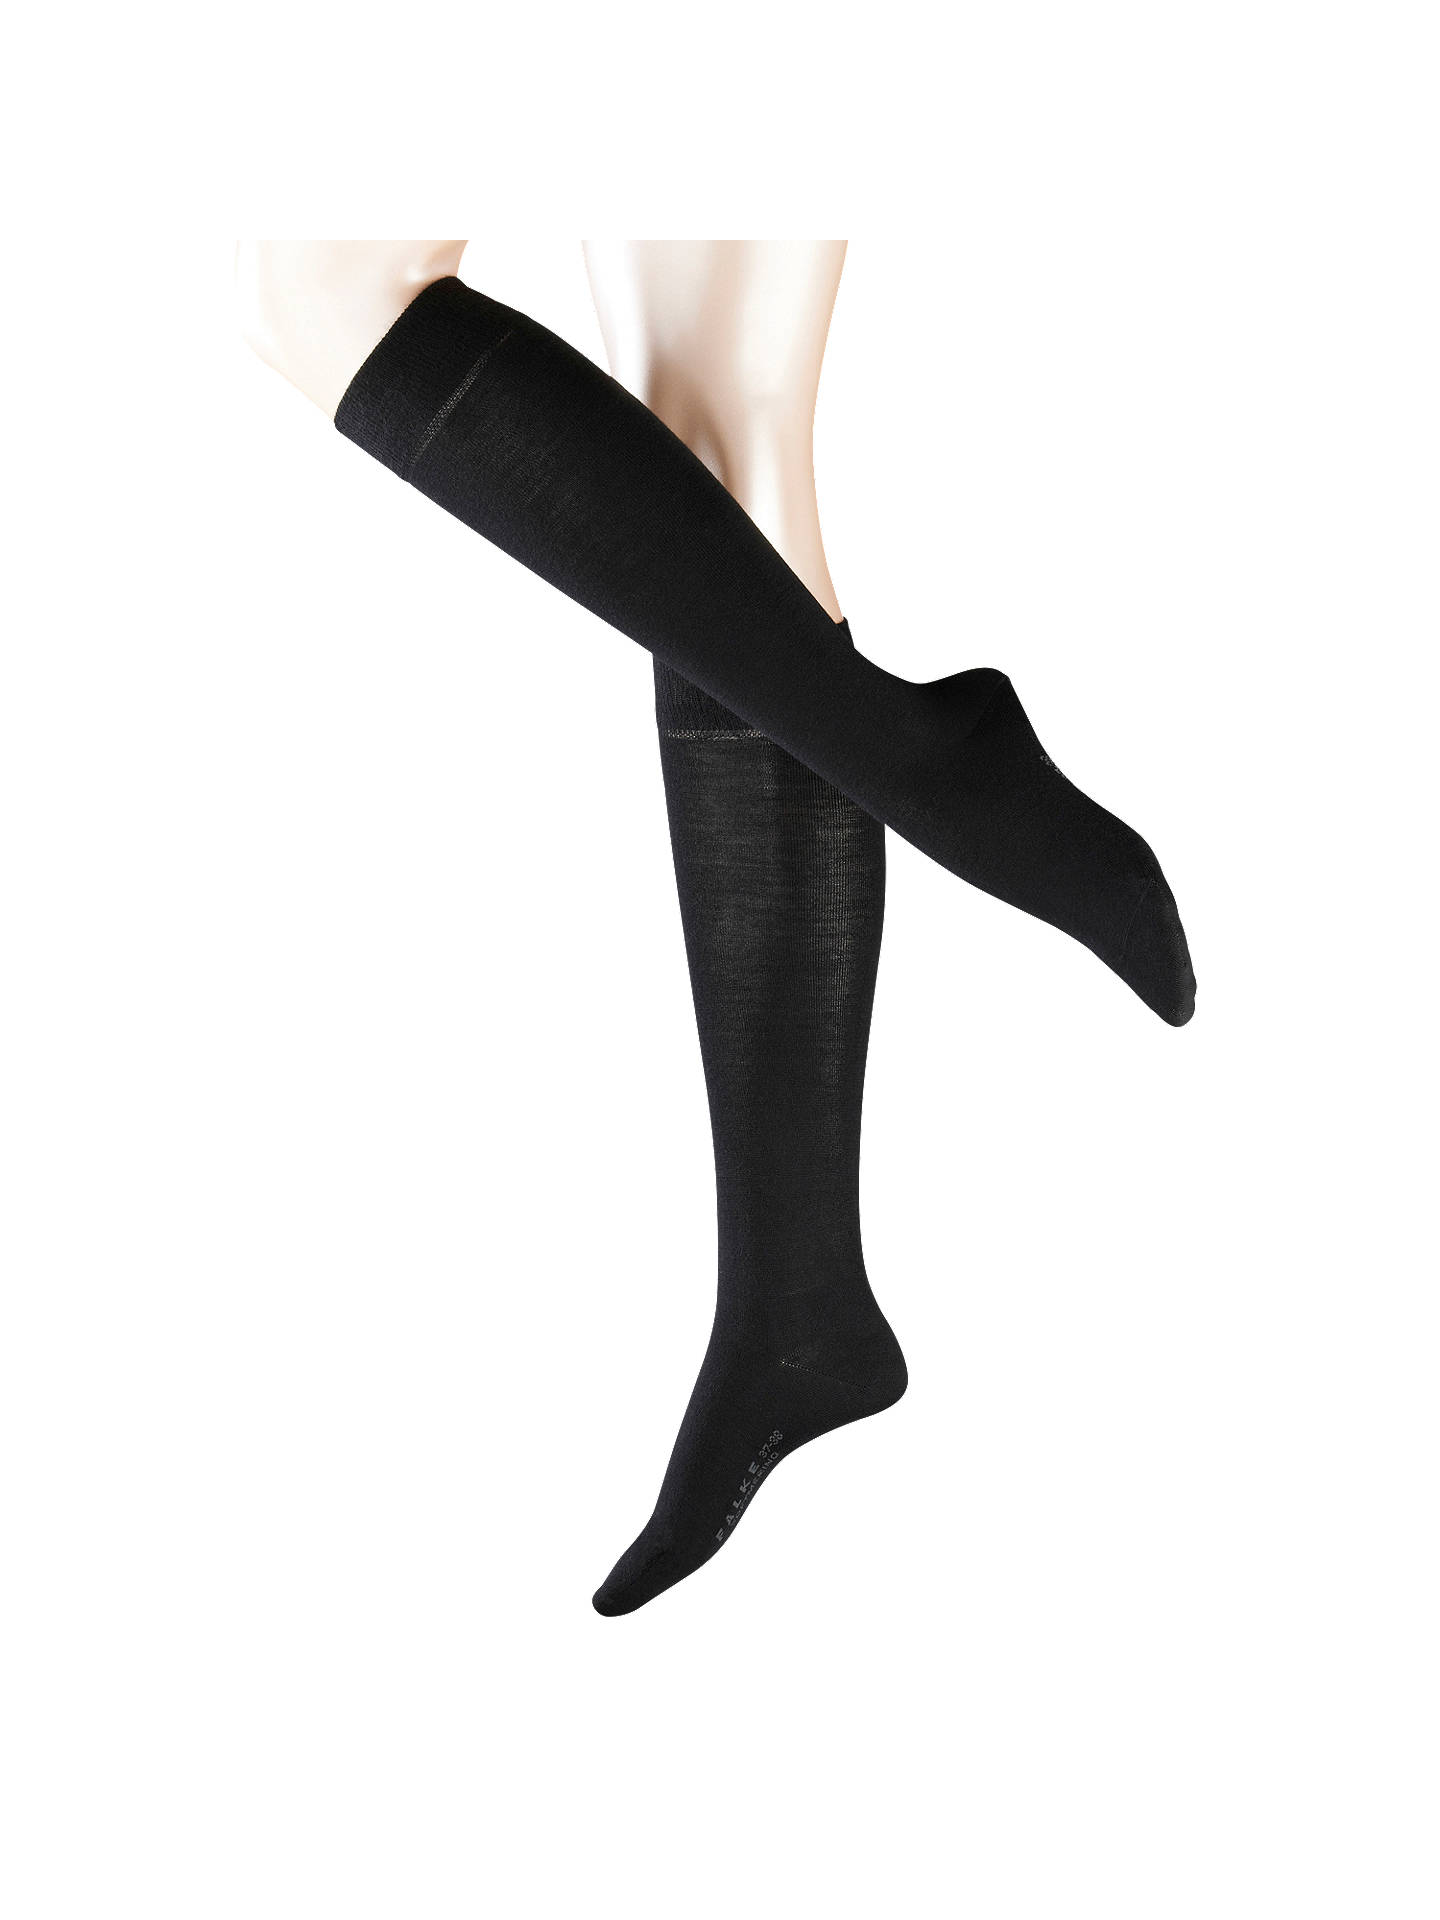 Buy FALKE Soft Merino Blend Knee High Socks, Black, S Online at johnlewis.com